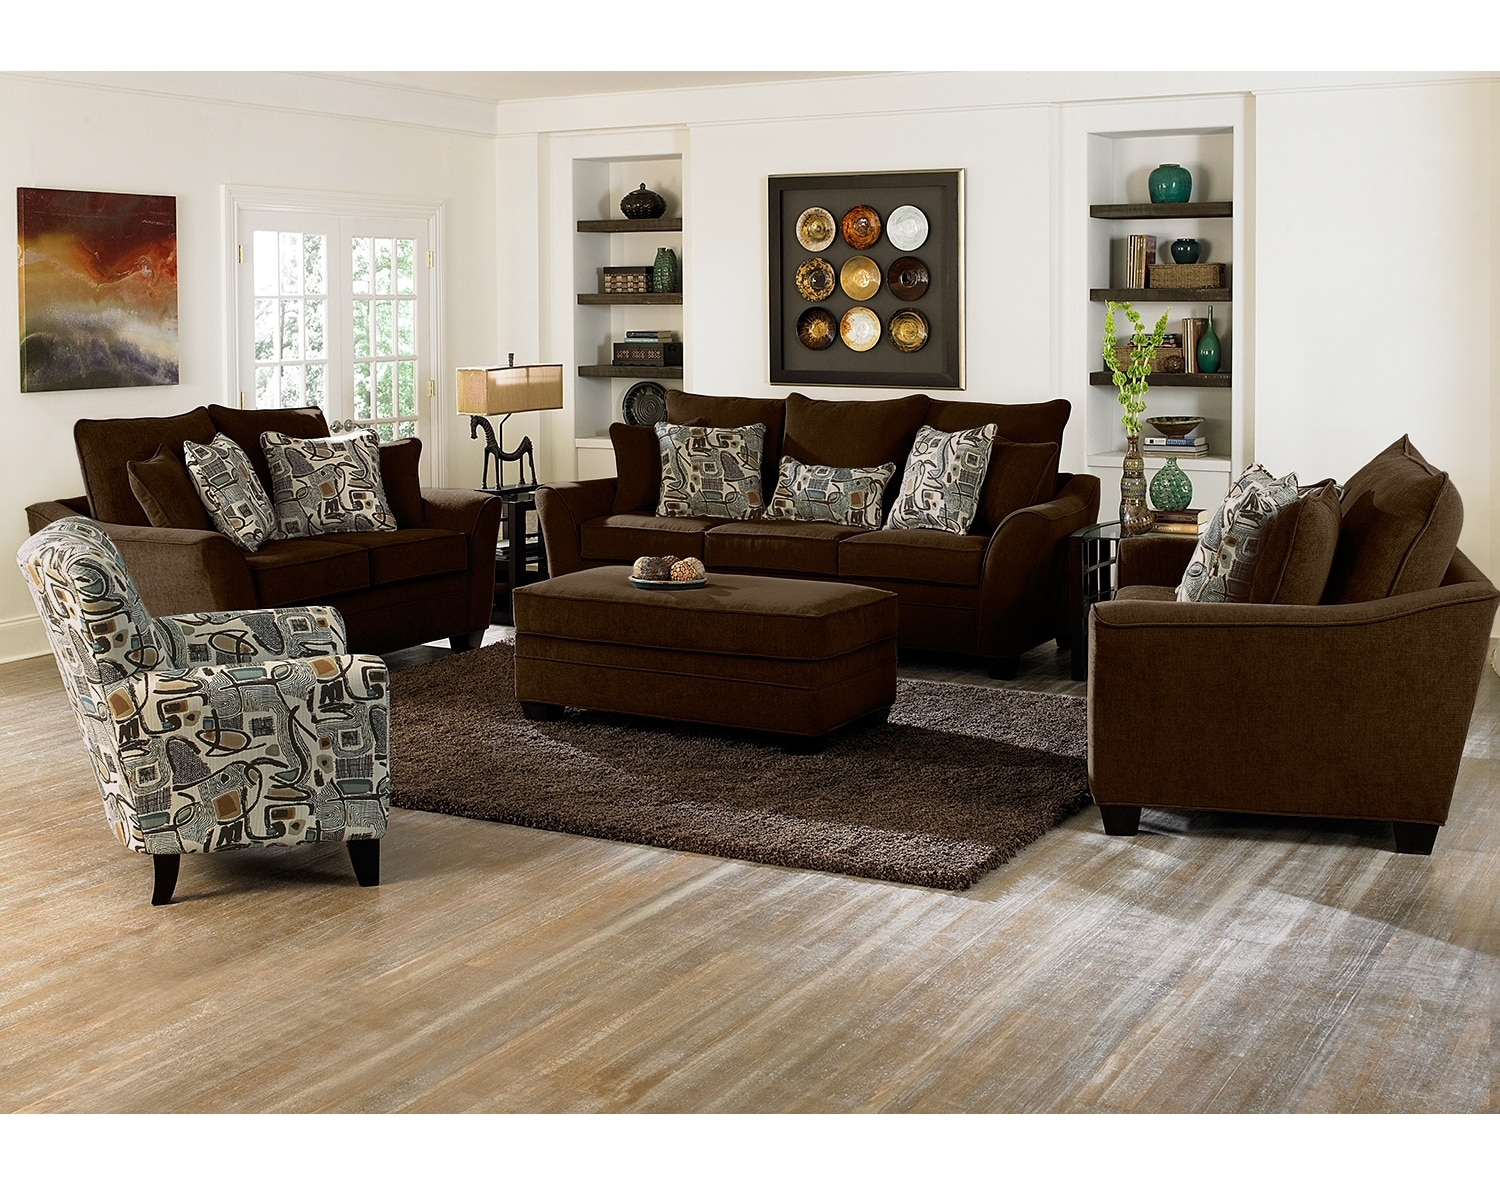 Living Room Furniture - The Albion Chocolate Collection - Sofa